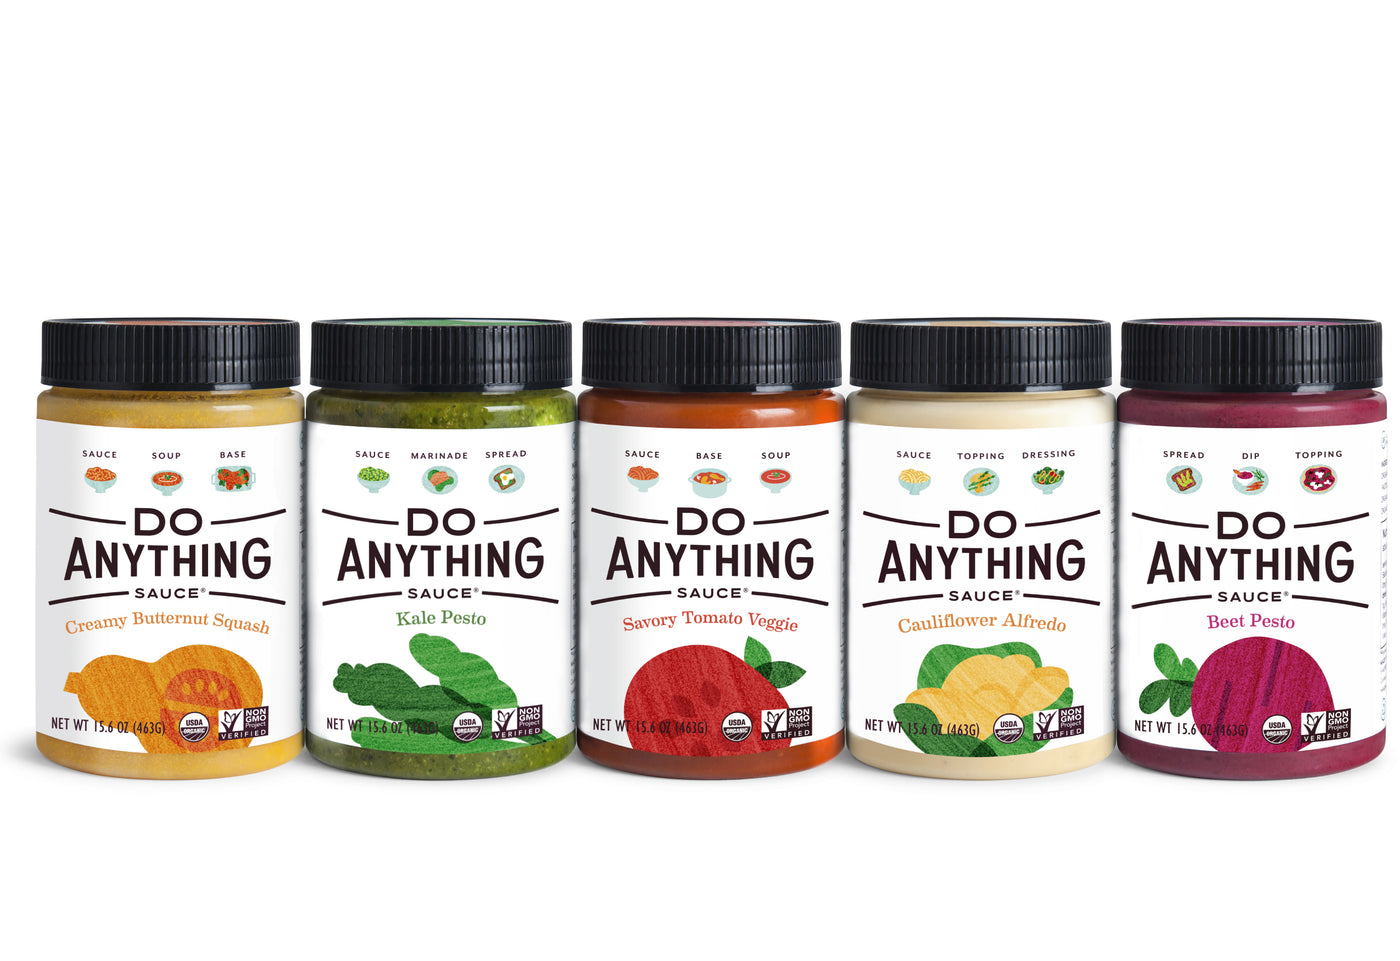 Do Anything Sauce Dinner Revival Kit; line up Butternut Squash Sauce, Kale Pesto, Tomato Veggie Sauce, Cauliflower Alfredo and Beet Pesto